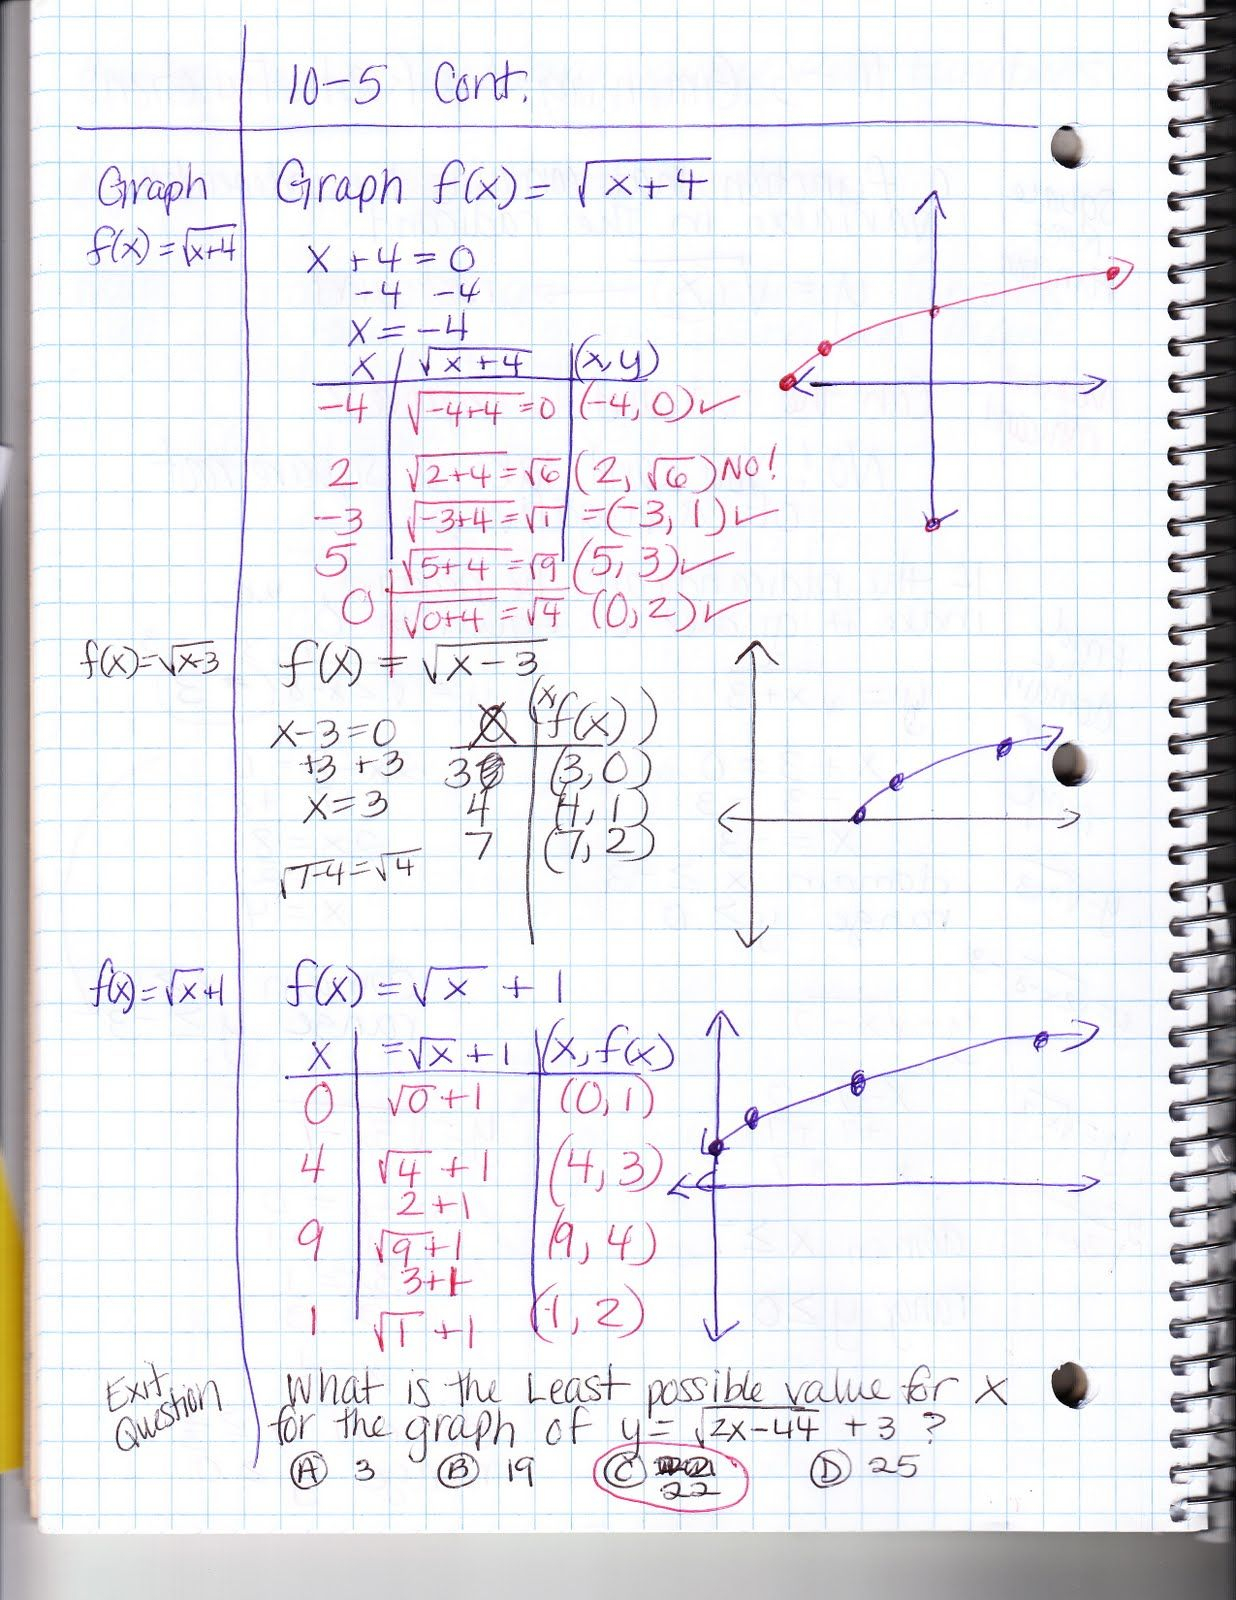 Graphing Square Root And Cube Root Functions Worksheet